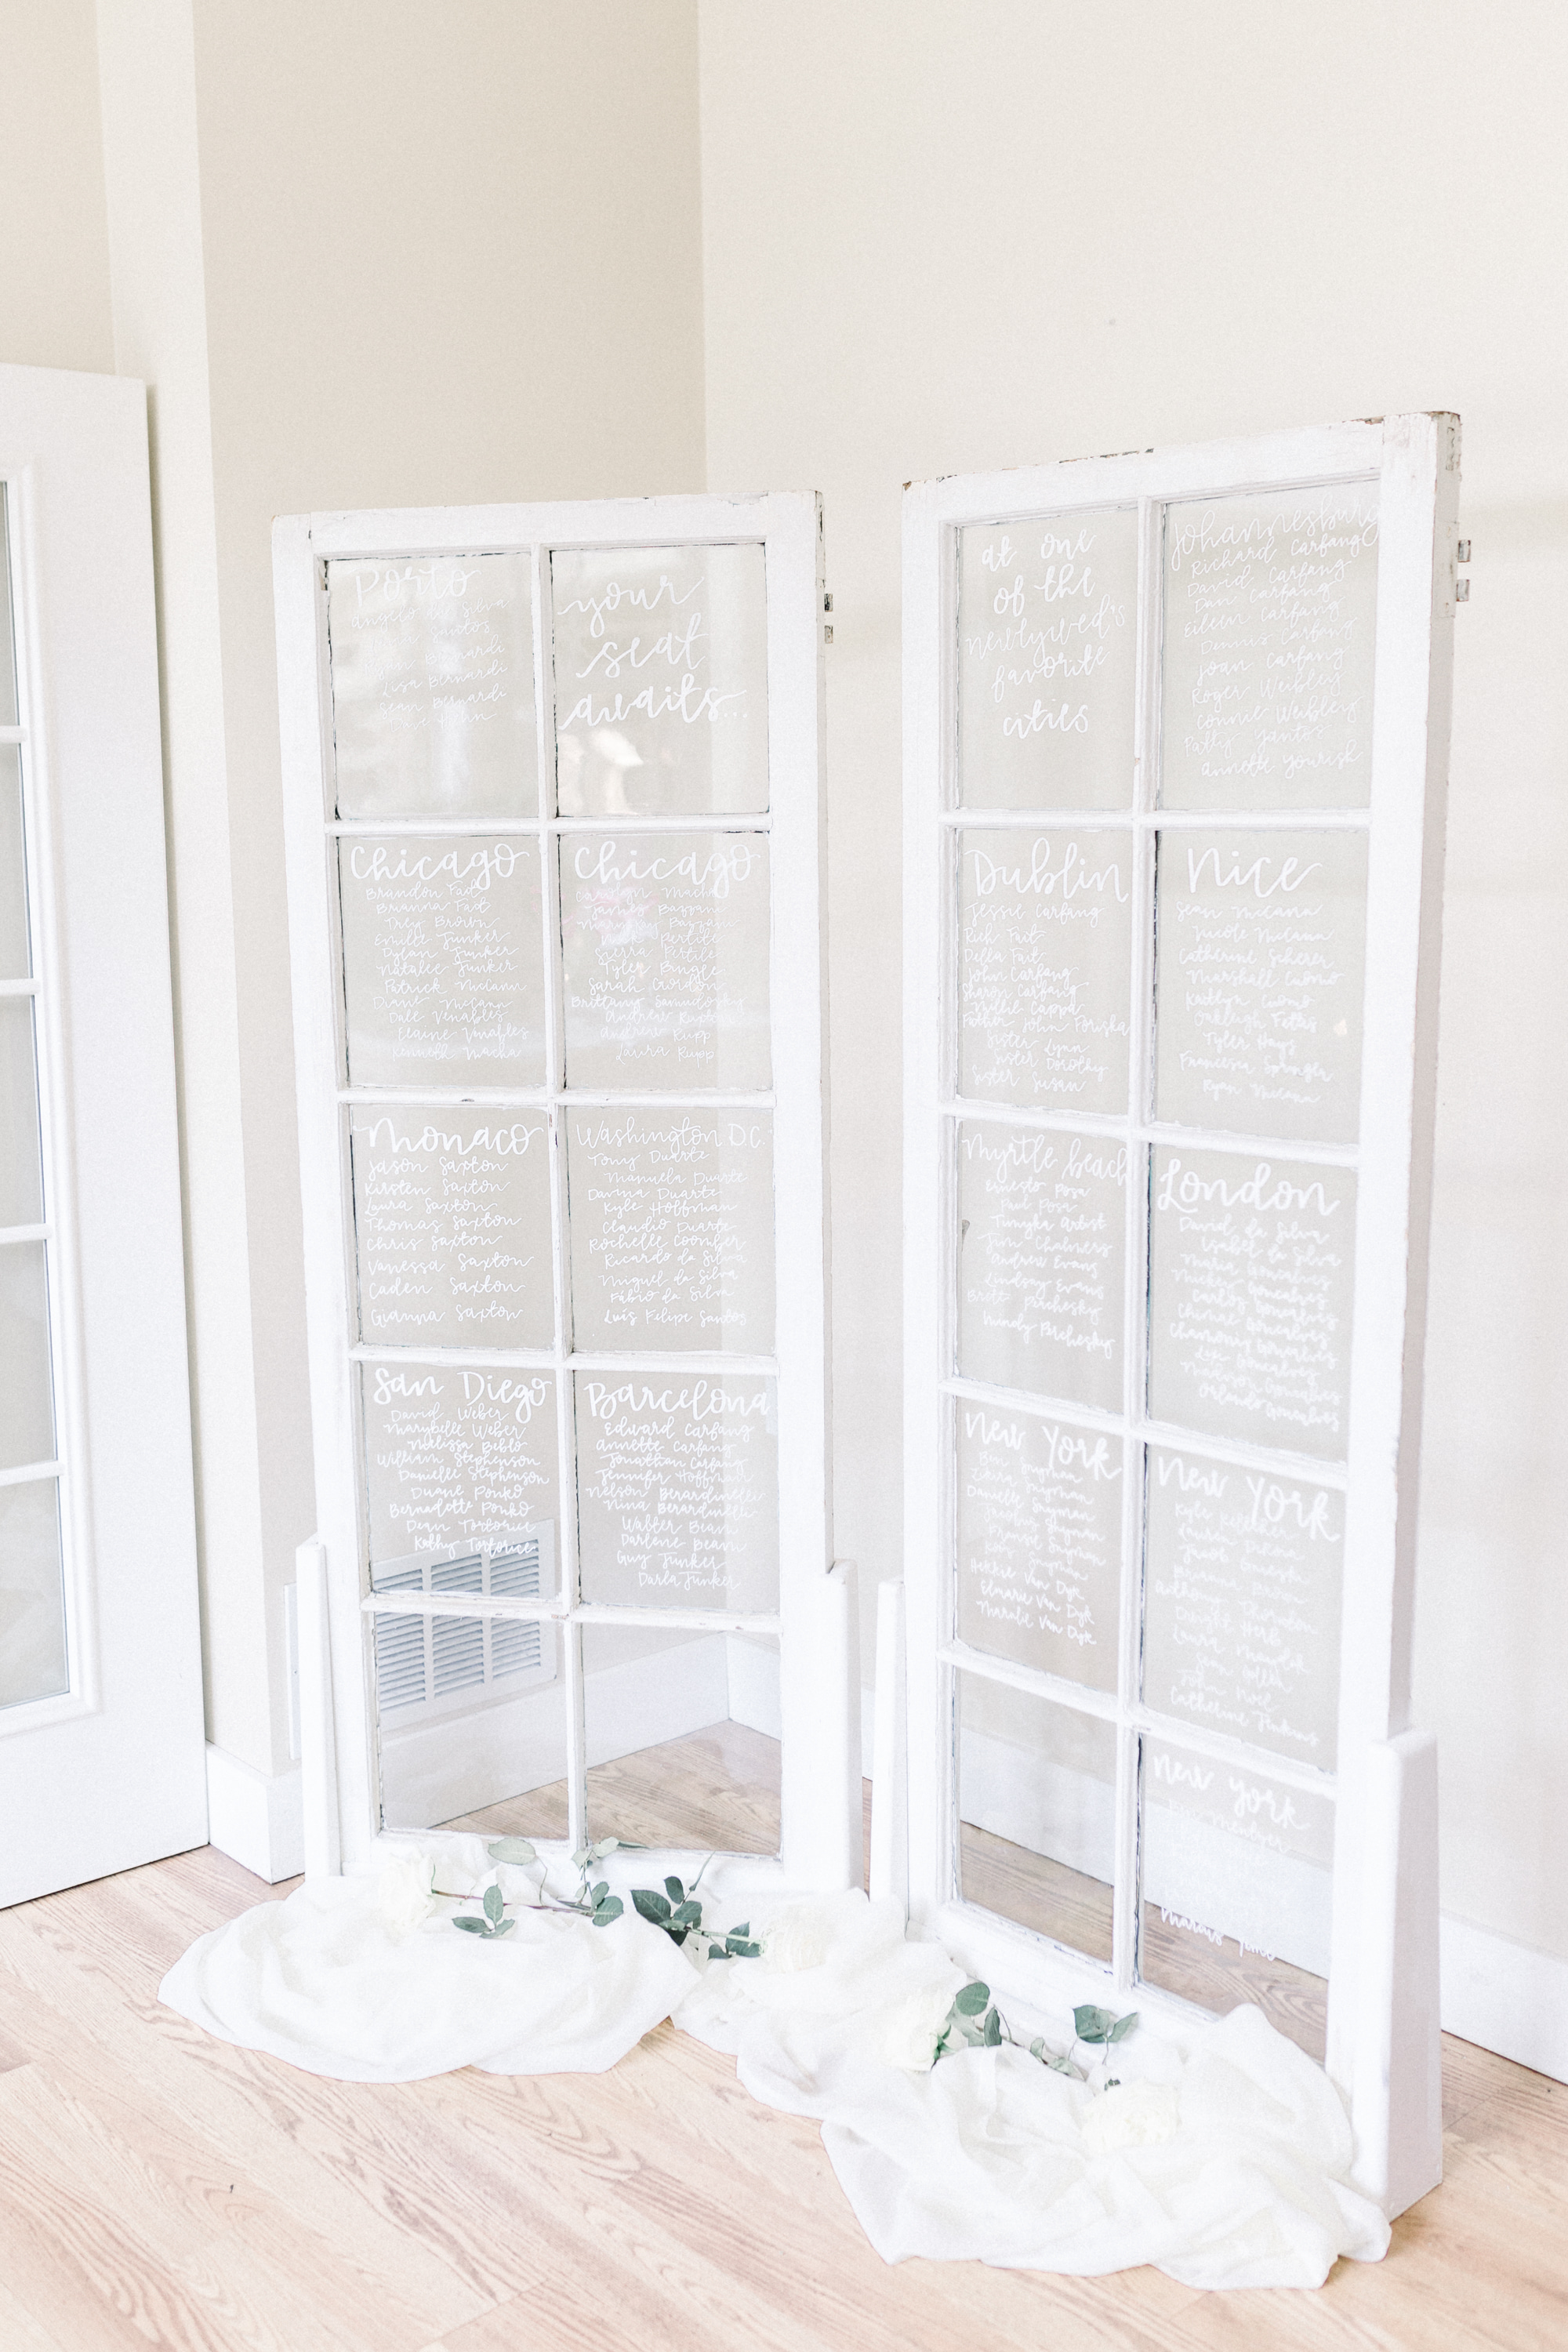 Vintage french doors to display tables at wedding reception for Pittsburgh wedding planned by Exhale Events. Find more wedding inspiration at exhale-events.com!